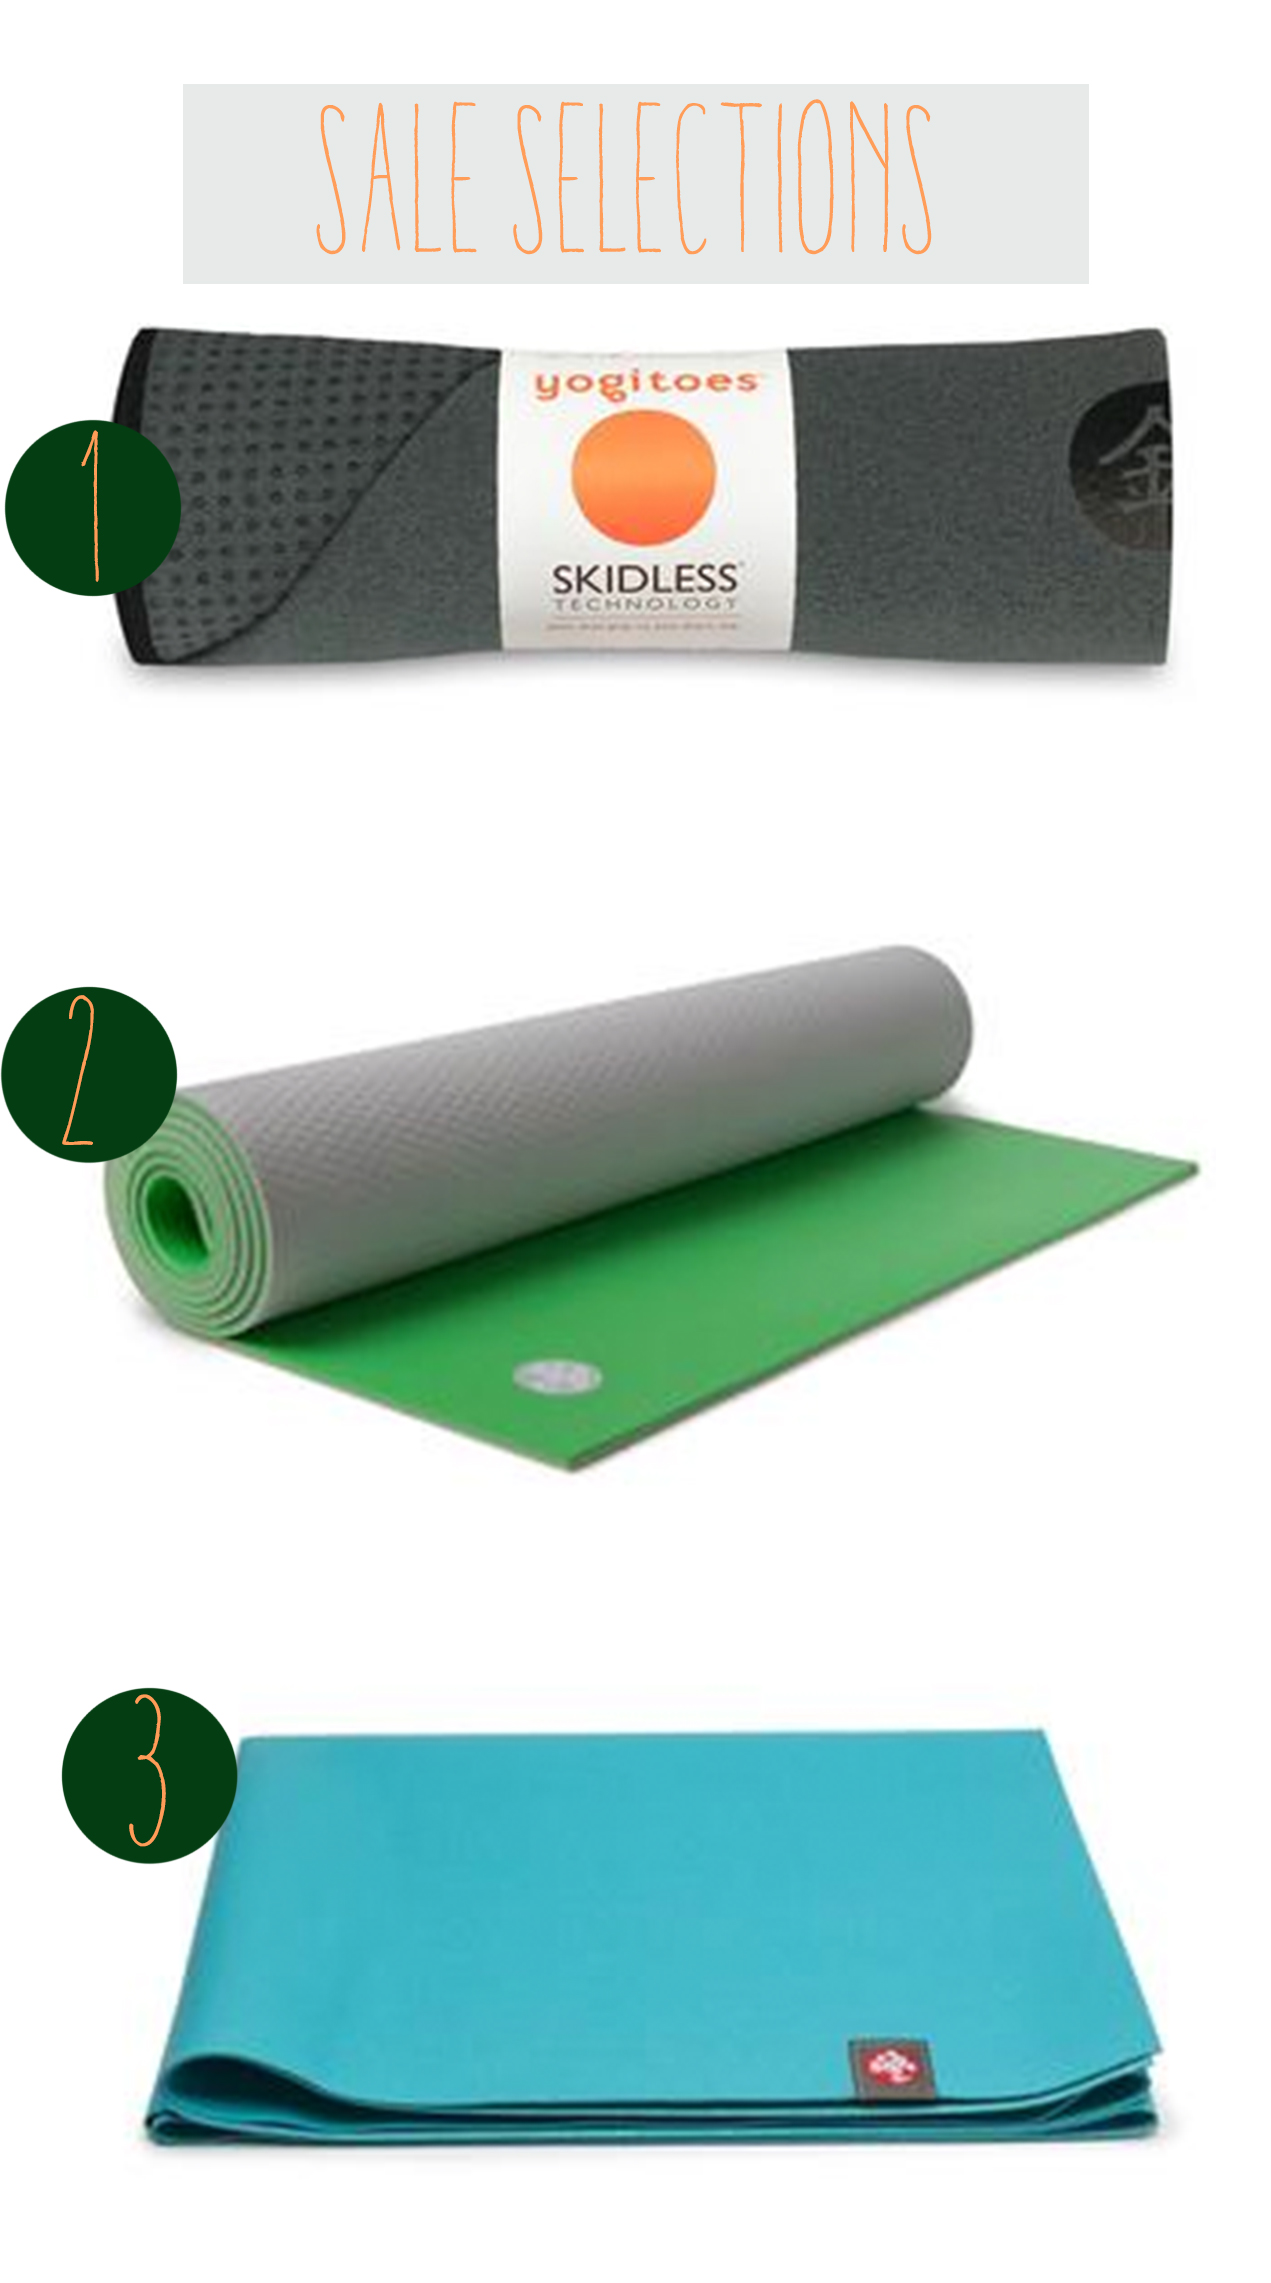 Some high quality items for yoga on sale.